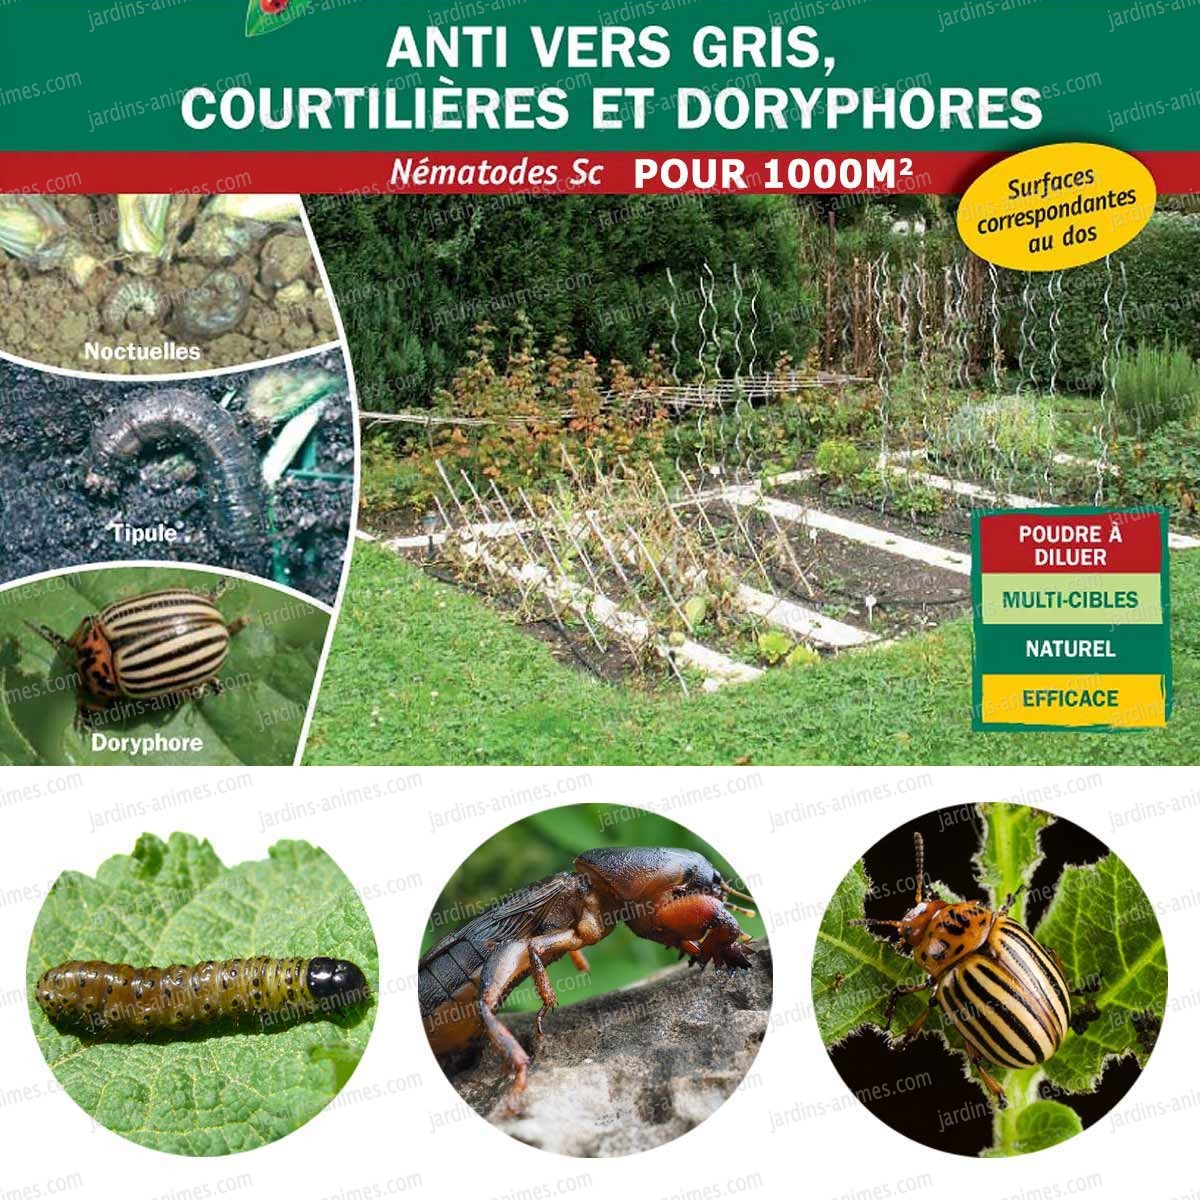 Nematodes 500millions anti vers gris courtili res for Traitement vers gris jardin